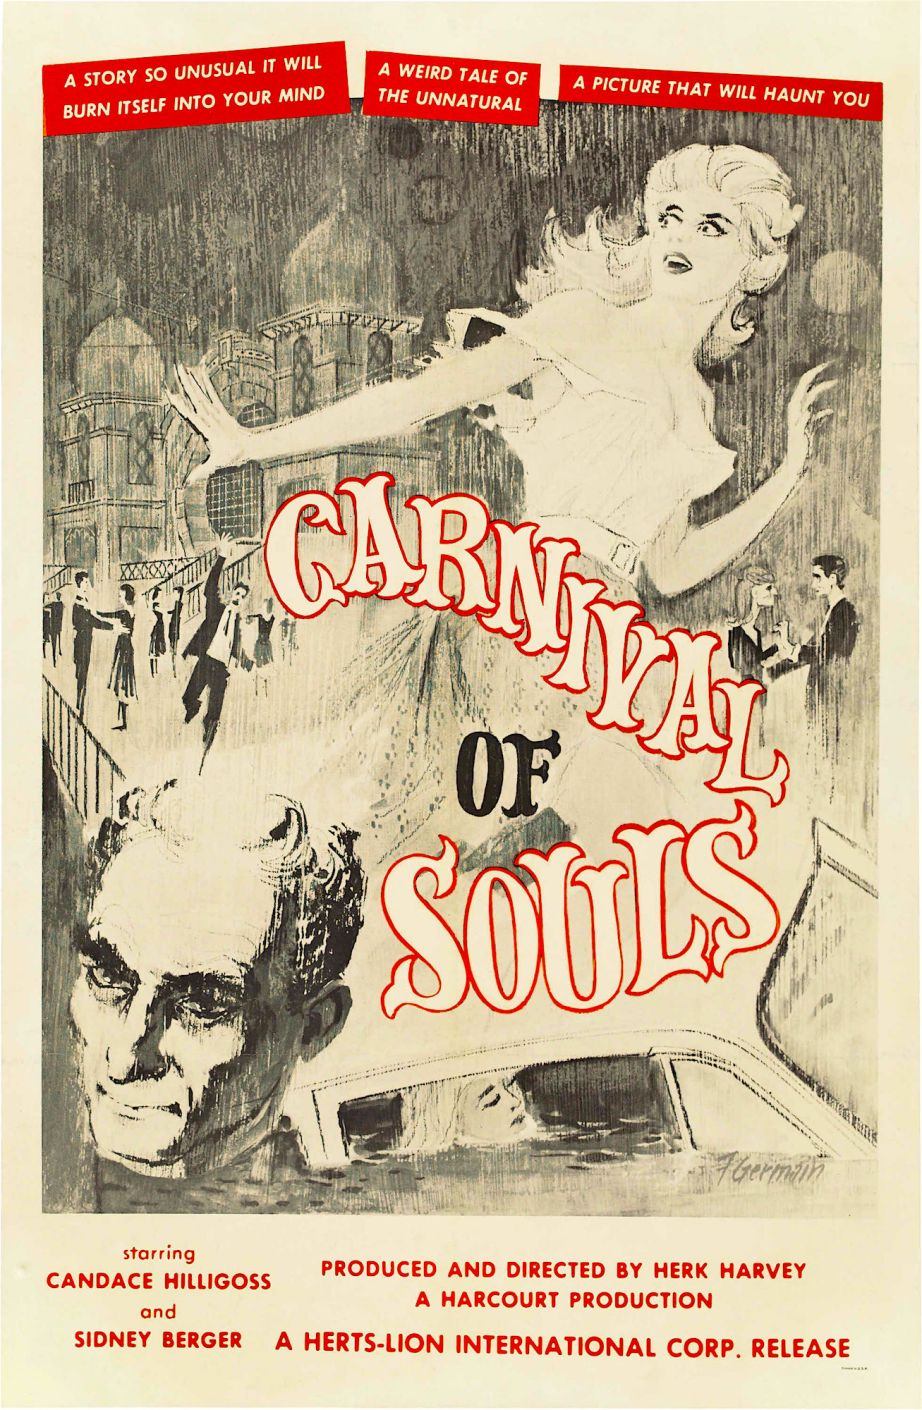 Filmed on a shoe string and with a desire to haunt vs. scare -- This strange B Movie is now a treasured member of The Criterion Collection. Carnival of Souls Herk Harvey, 1962